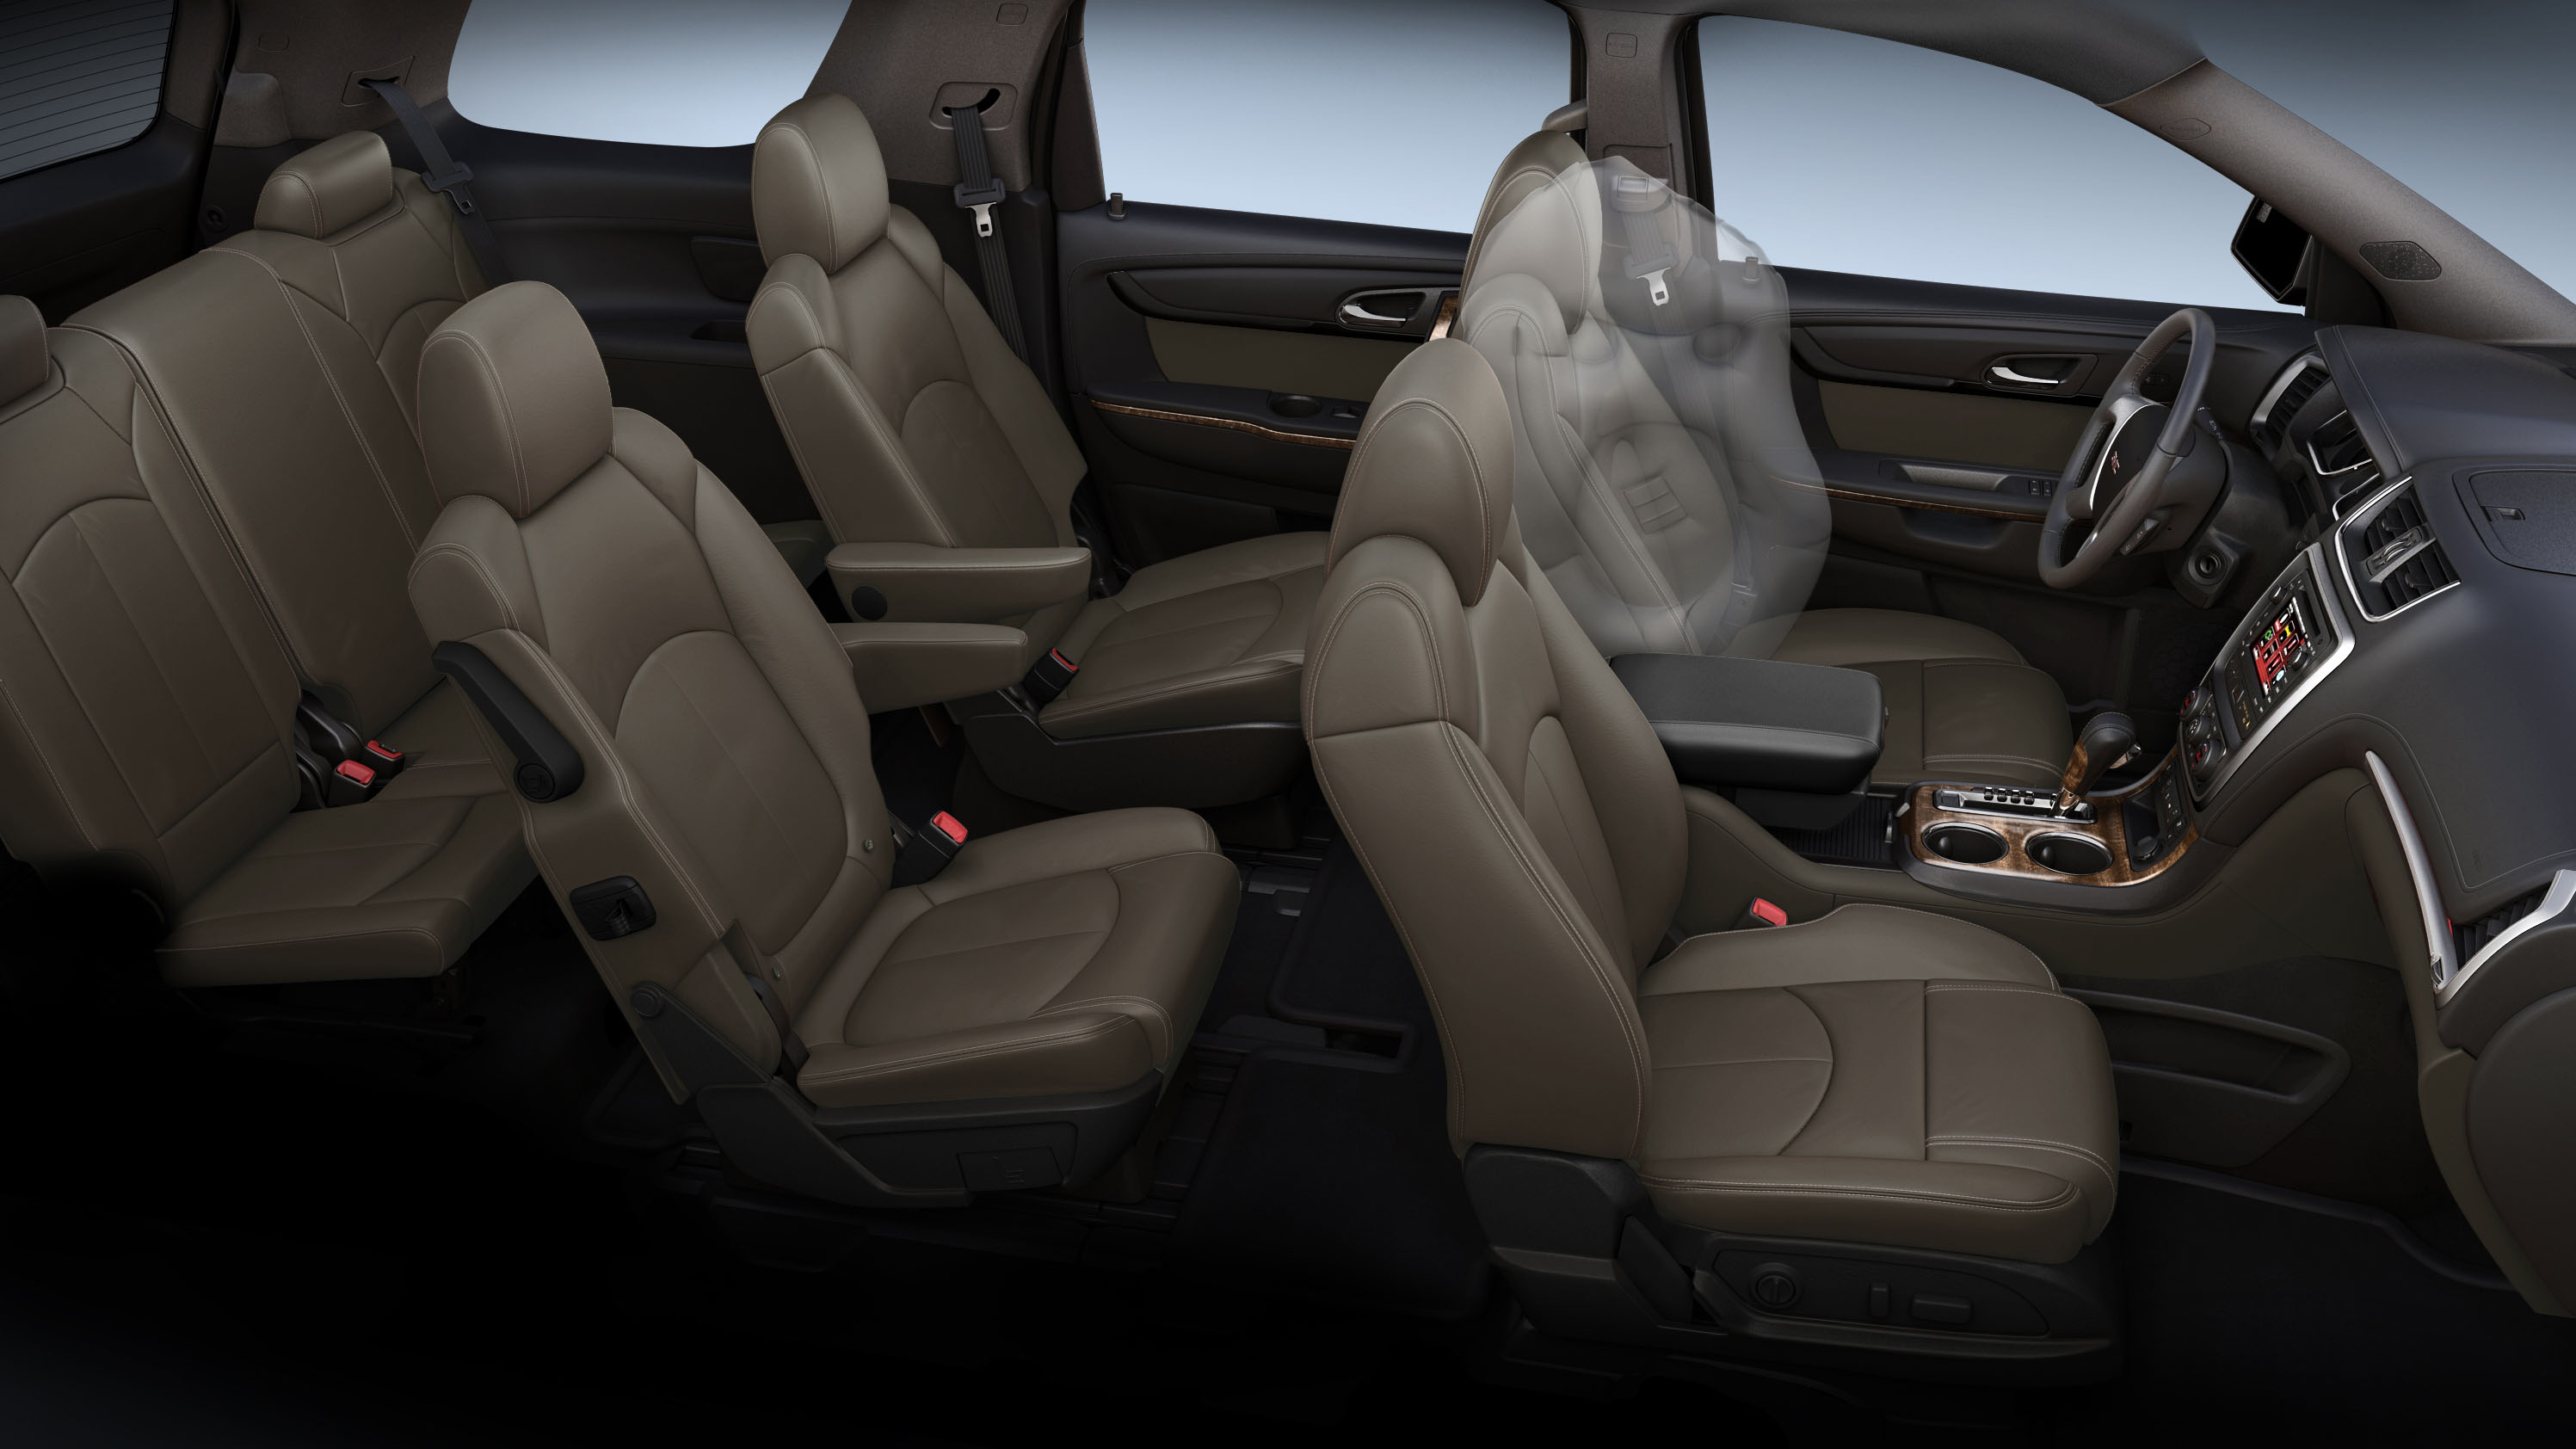 2013 GMC Acadia Airbags. (02/08/2012)